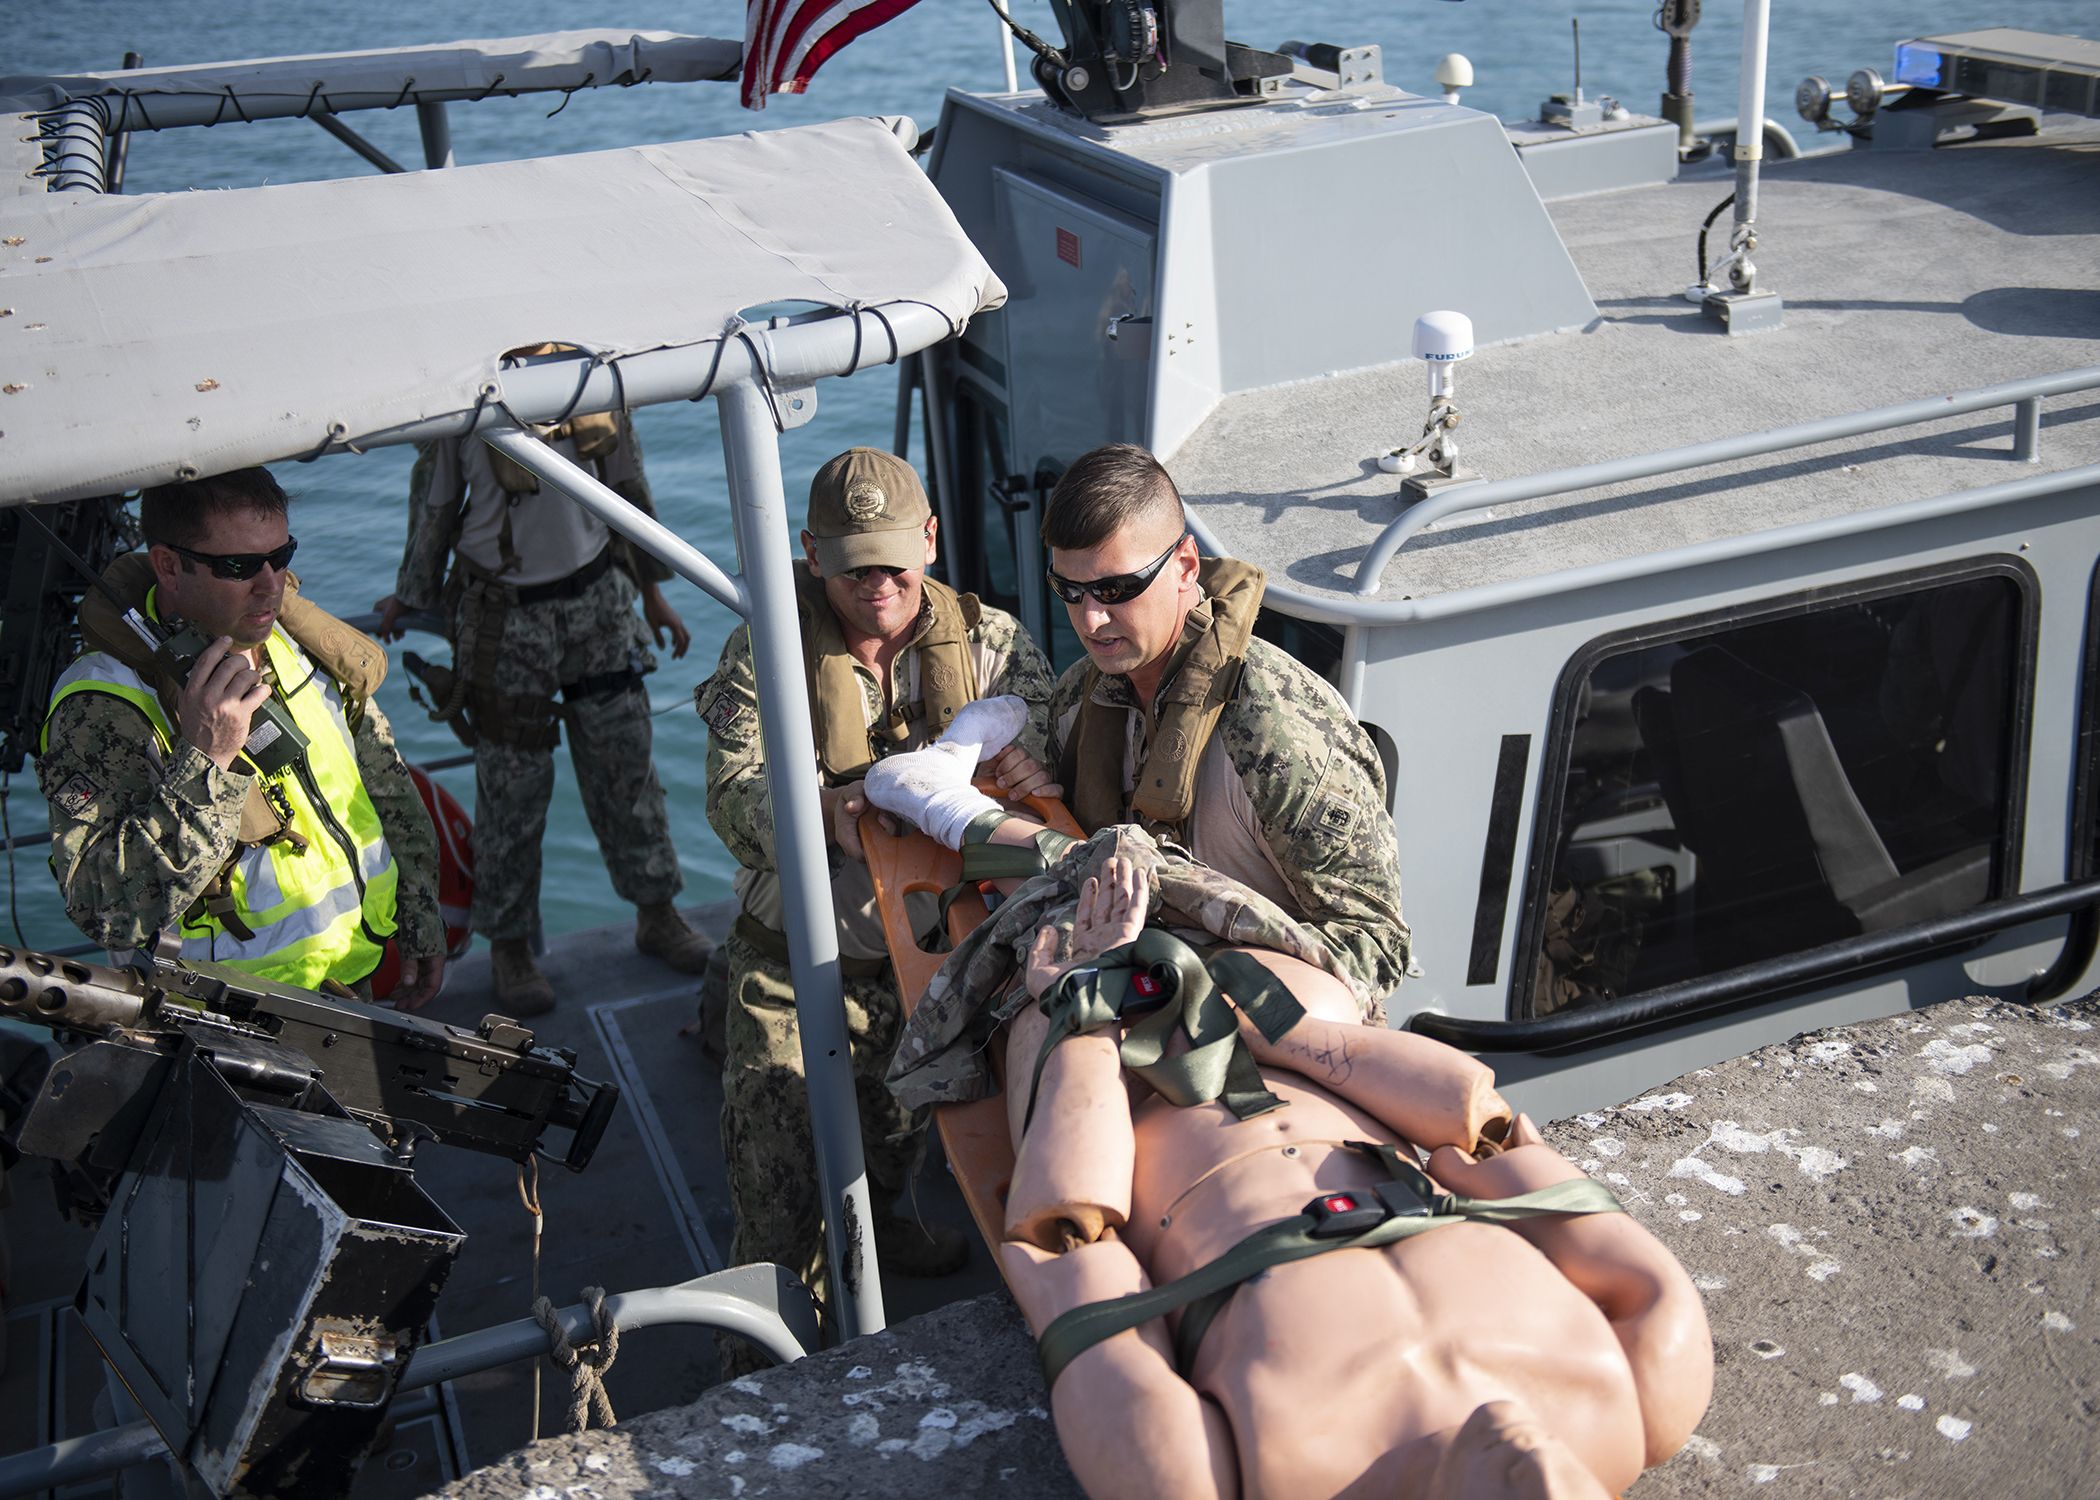 U.S. Navy Sailors from Coastal Riverine Squadron 8, Camp Lemonnier, Djibouti, transfer a simulated casualty off a Rigid Hull Inflatable Boat during the first-ever U.S. military exercise at the Port of Djibouti, Djibouti, Dec. 19, 2018. The exercise integrated U.S. Navy, Army and Djibouti Port Authority assets. (U.S. Air Force photo by Tech. Sgt. Shawn Nickel)